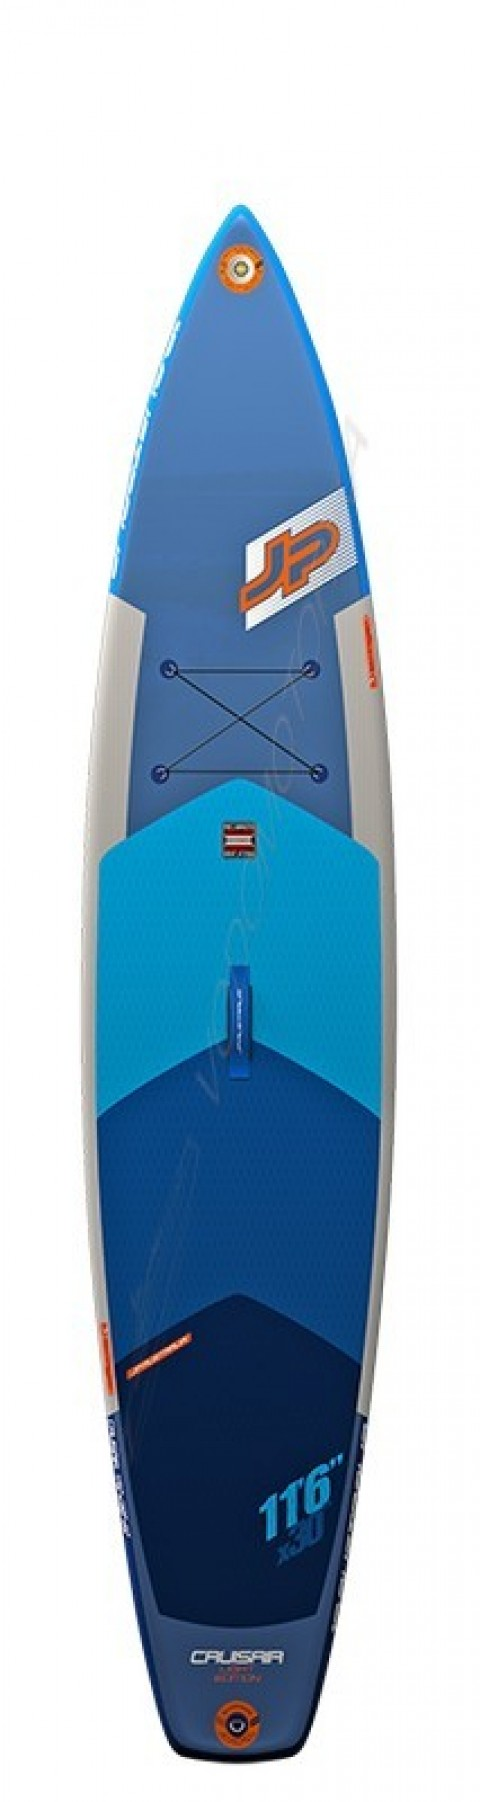 "Доска SUP JP CRUISAIR 11'6""x30"" LE"